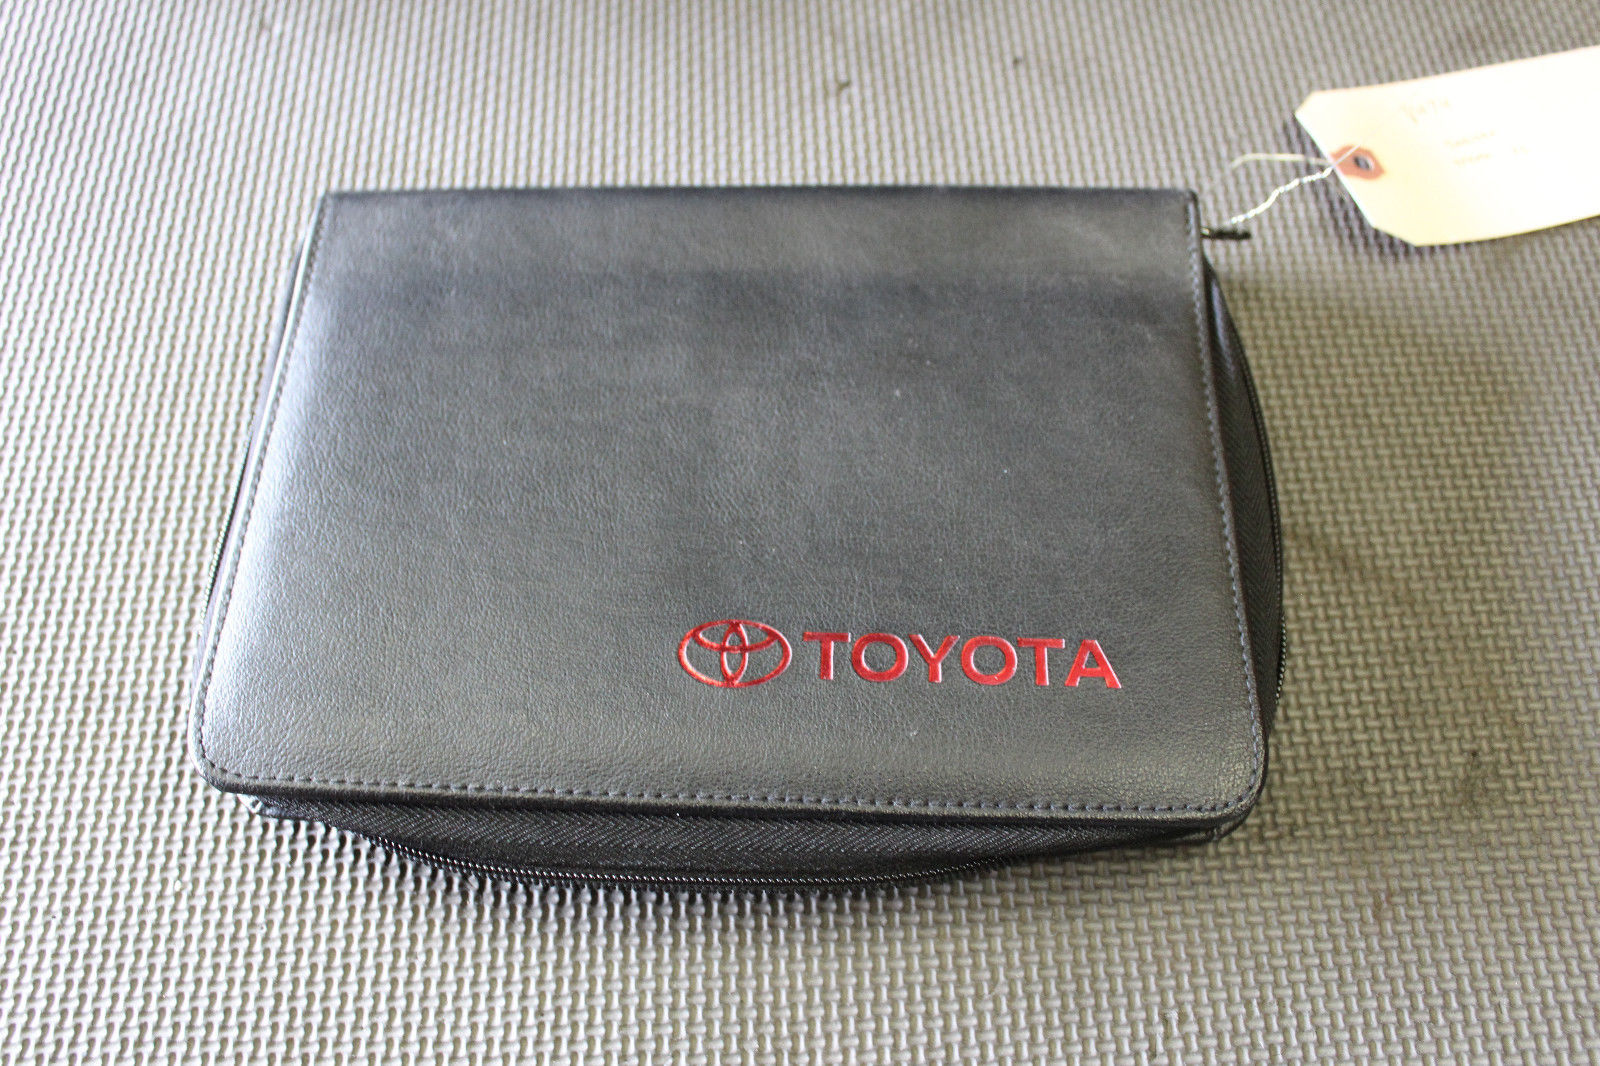 2002 Toyota Tundra Booklet Manual Owner and 50 similar items. S l1600